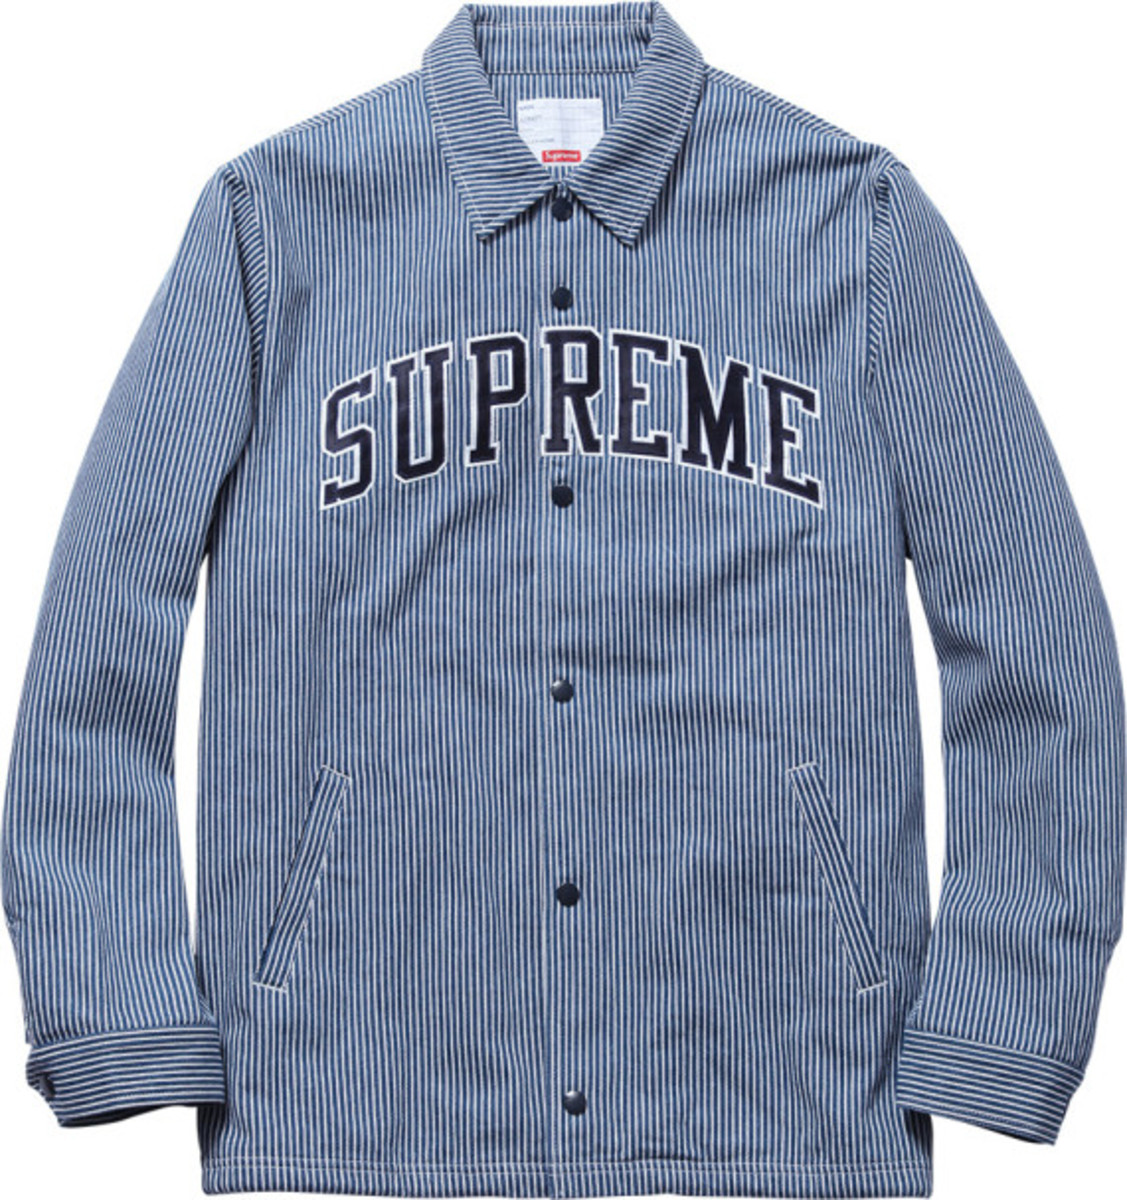 supreme-fall-winter-2013-apparel-collection-096